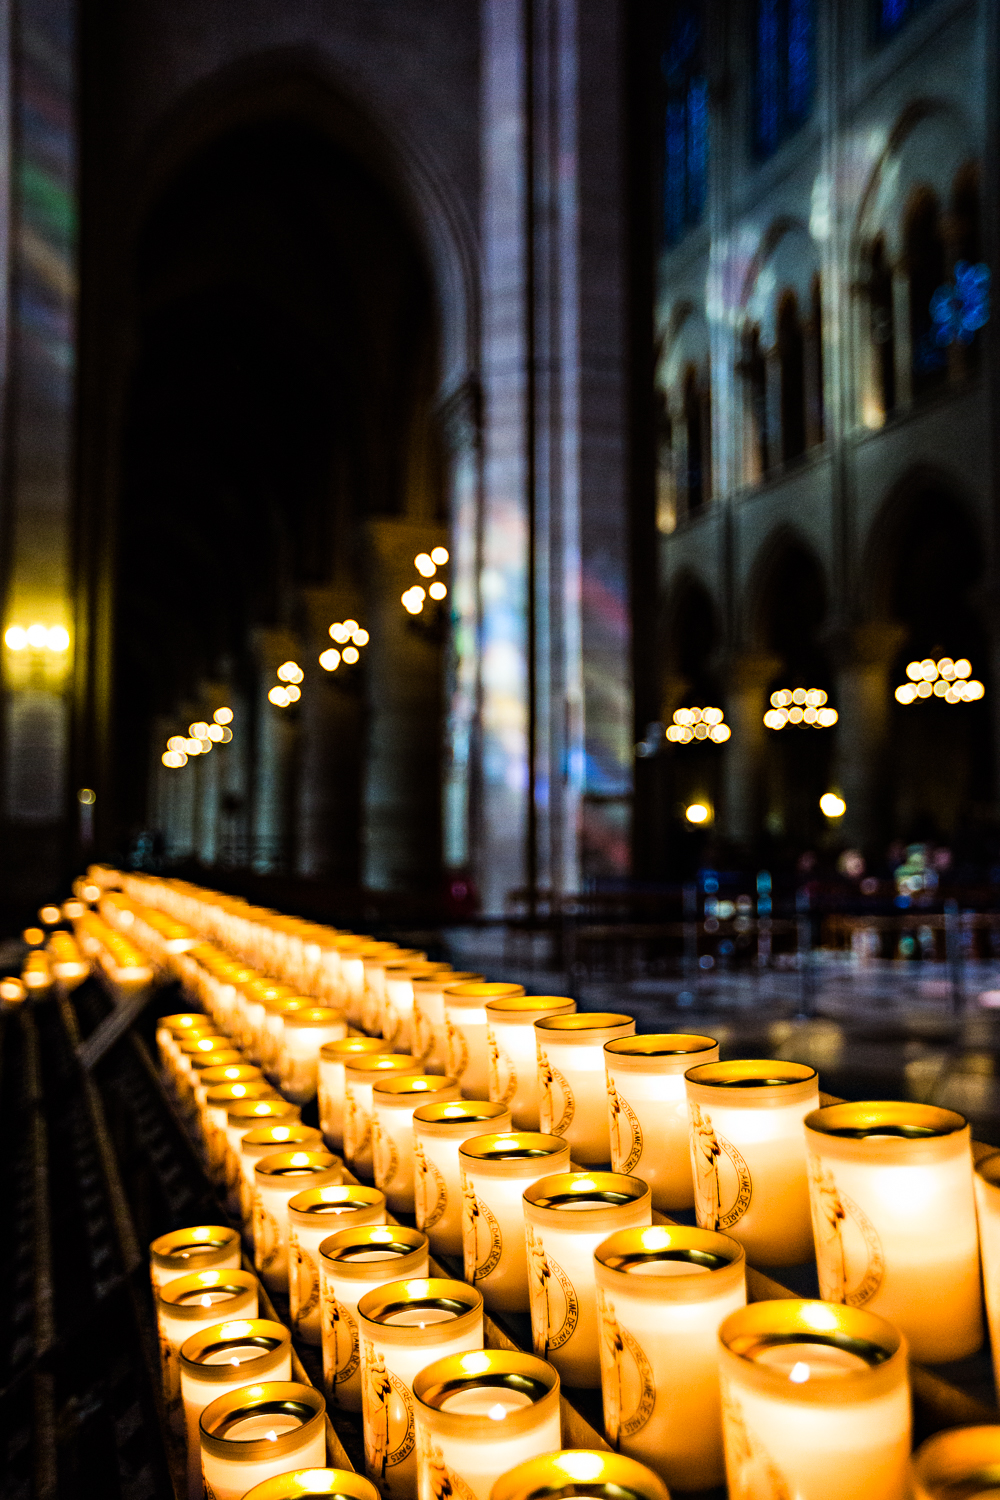 adventure-travel-photography-becky-brockie-paris-notre-dame-candles.jpg